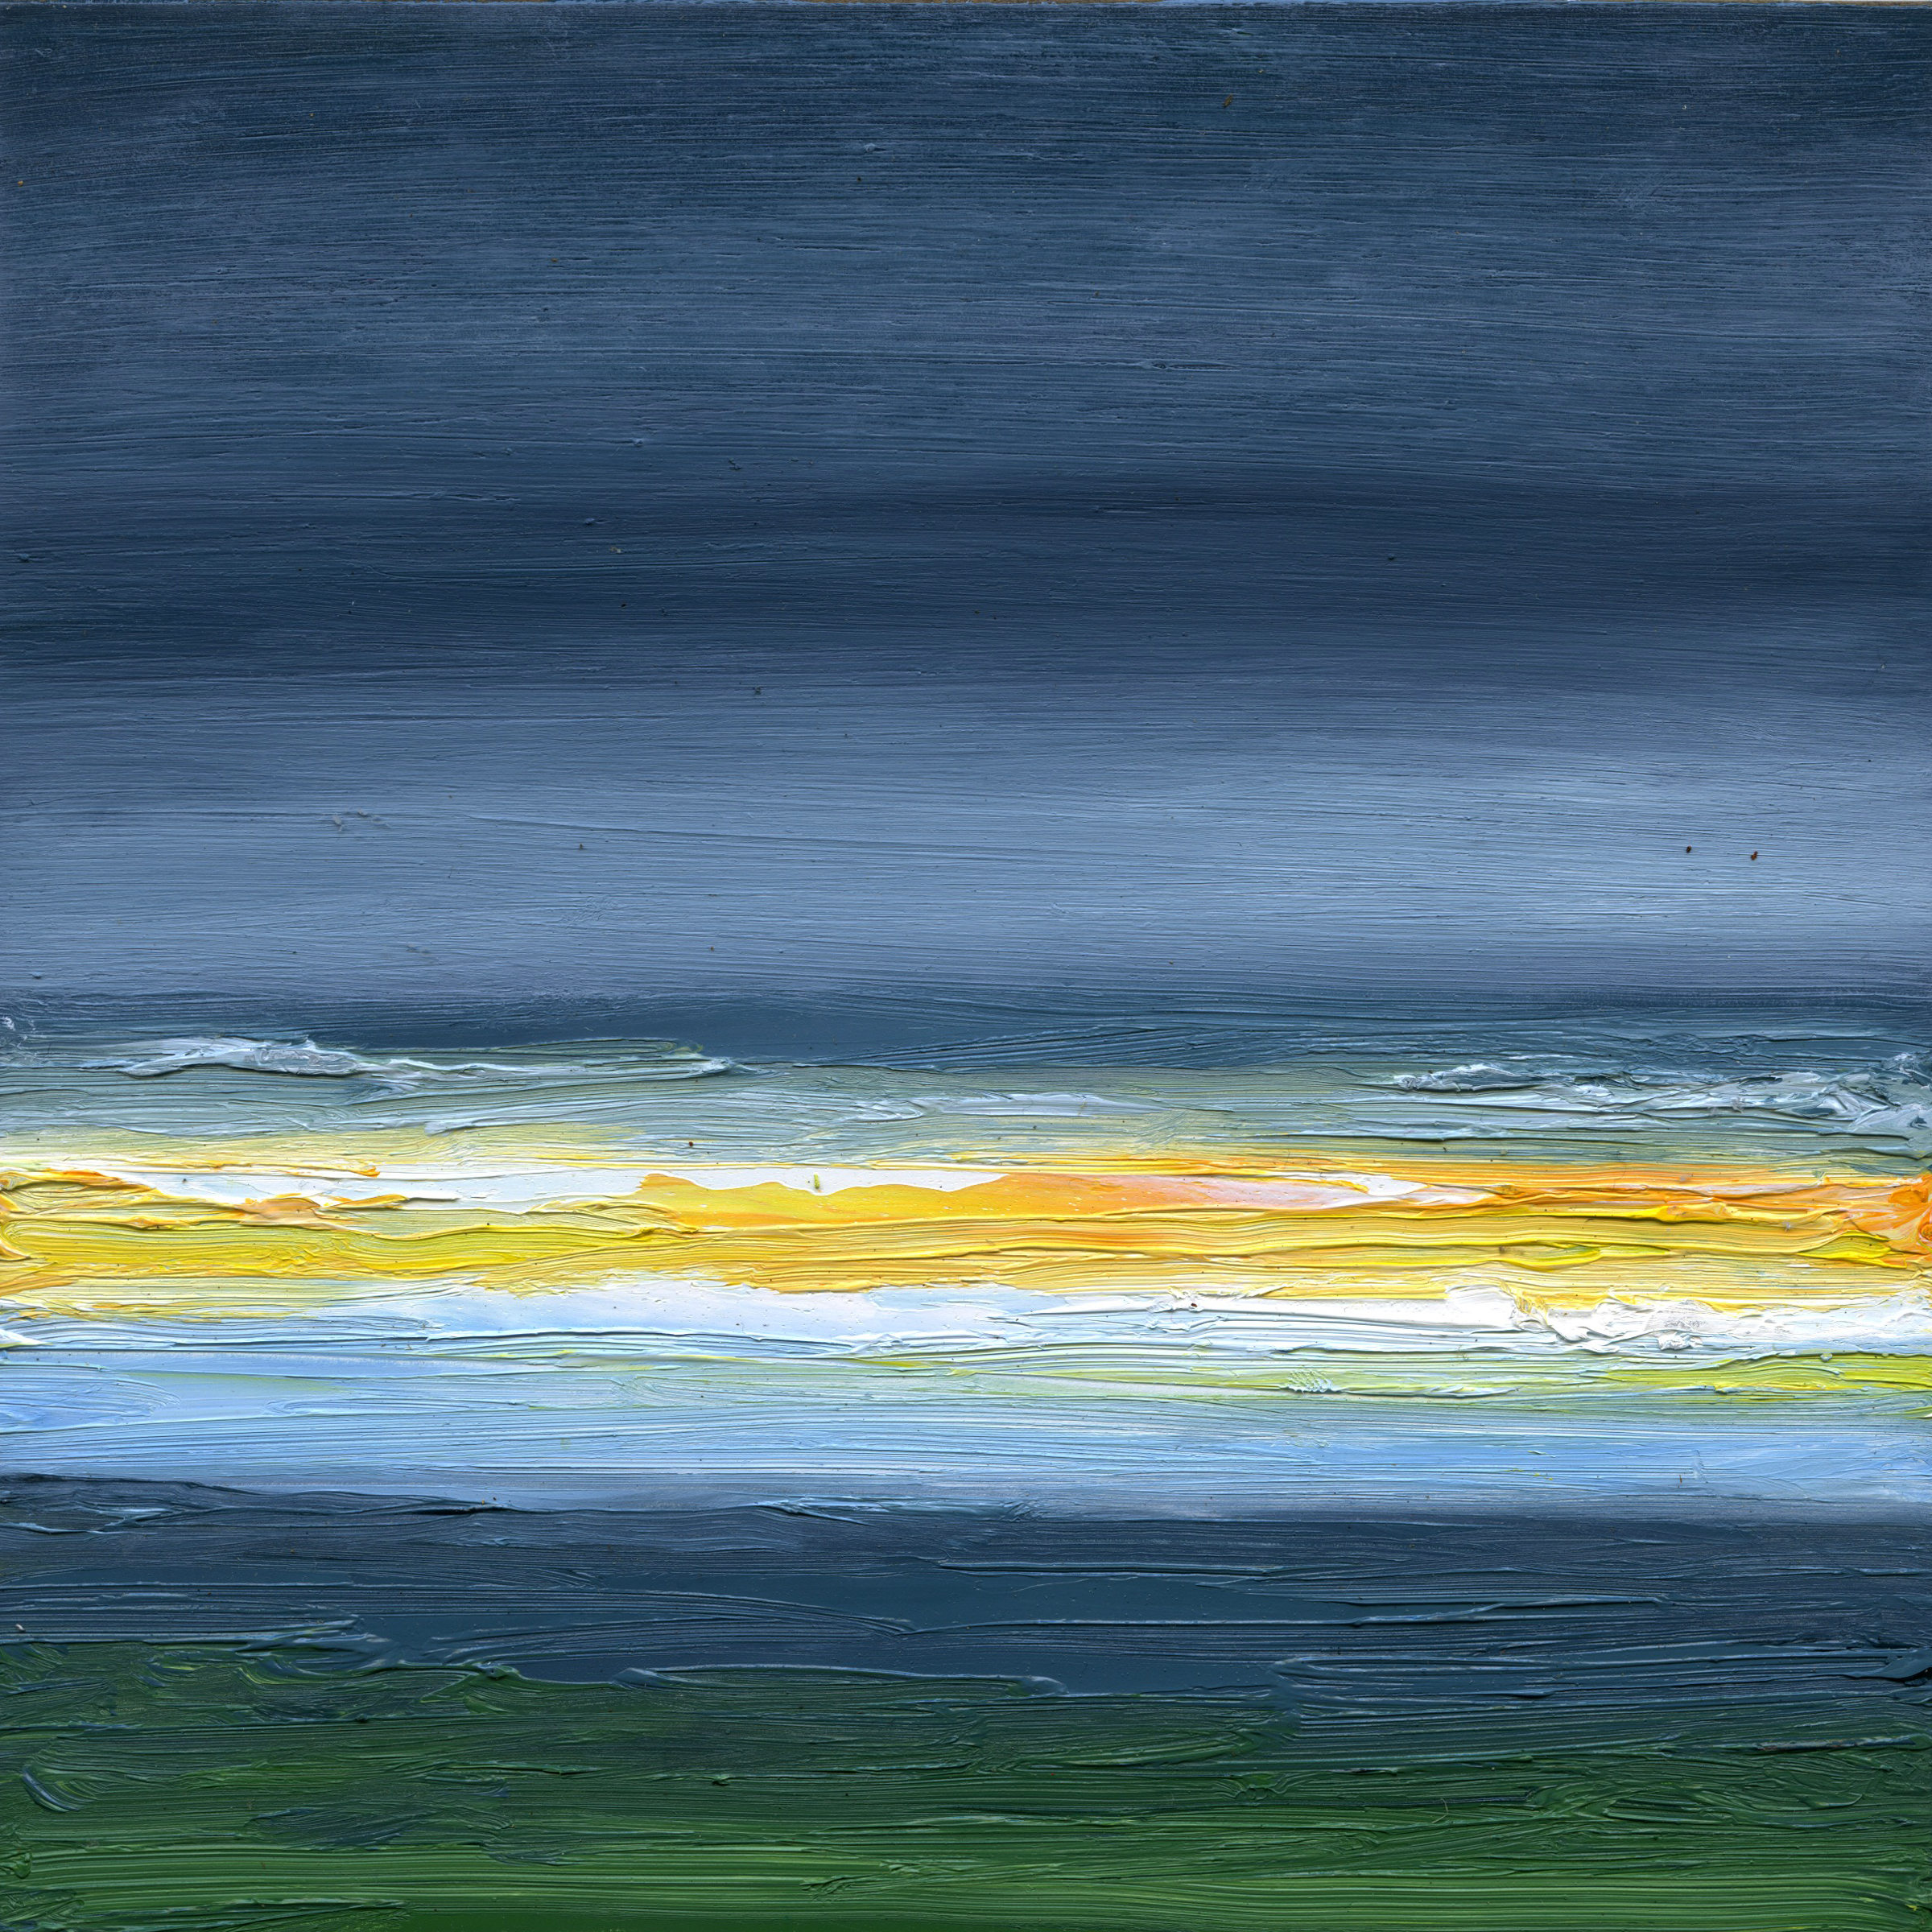 At The Horizon - Jack's View Cape Cod Study, oil on board, 8 by 8 inches, 2015, $750